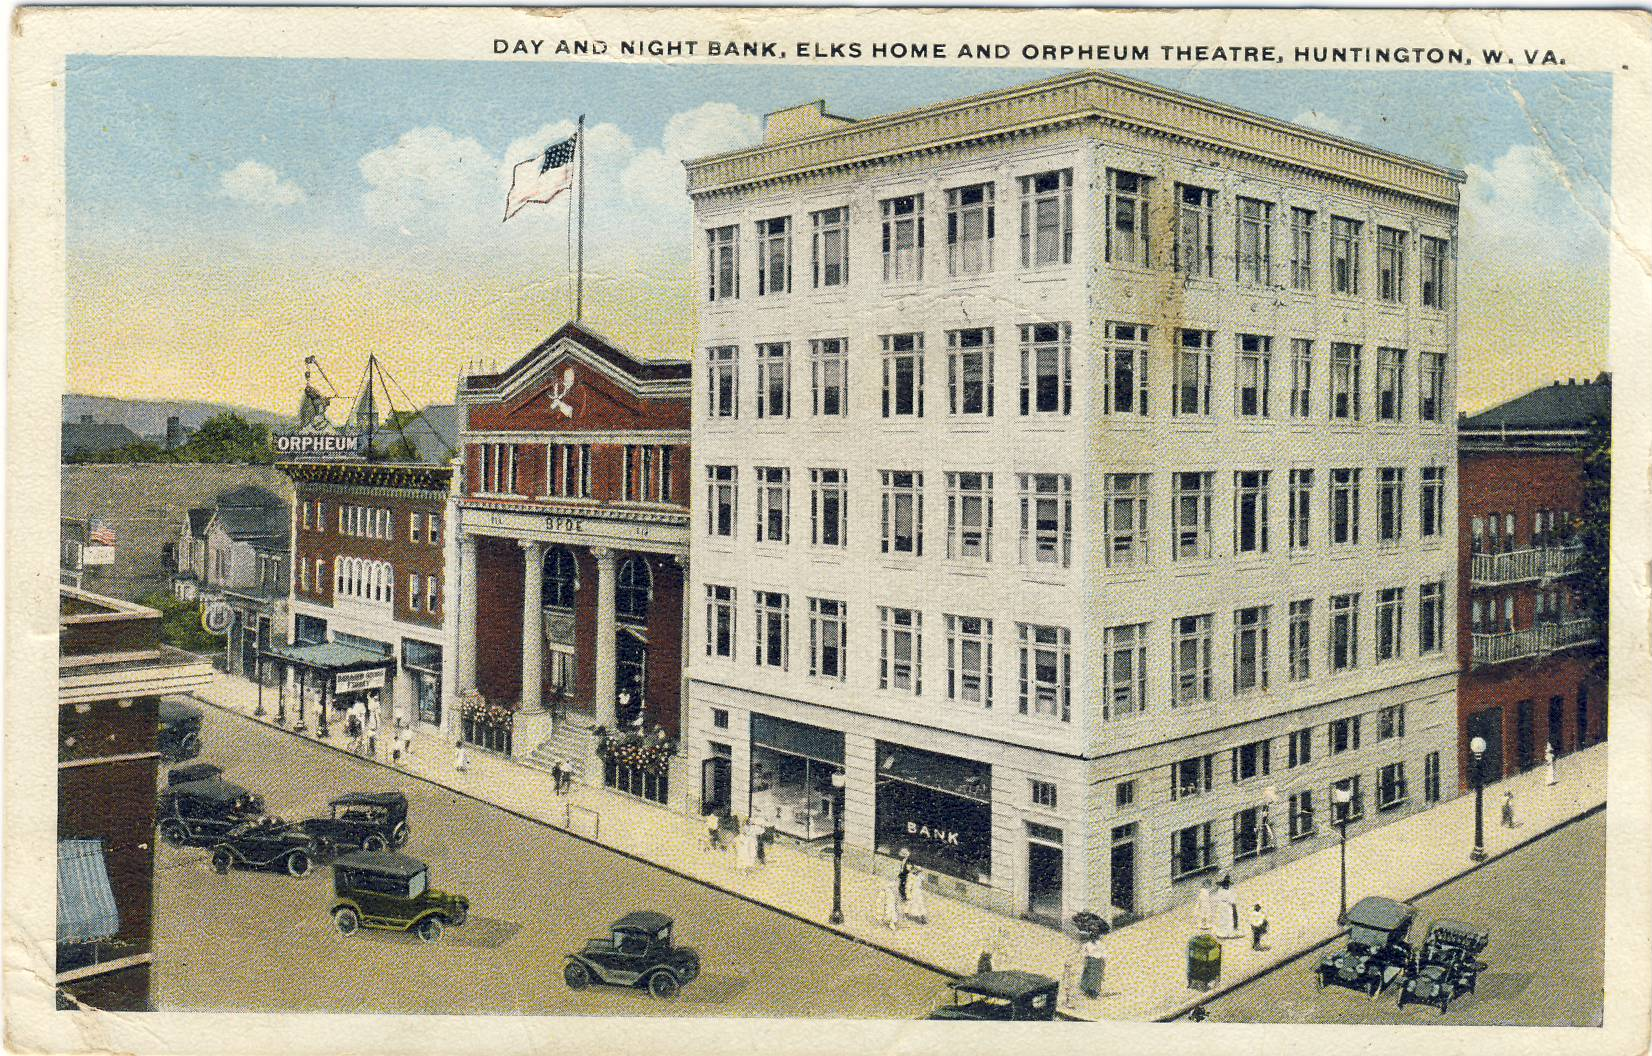 Elks Lodge in the Middle.